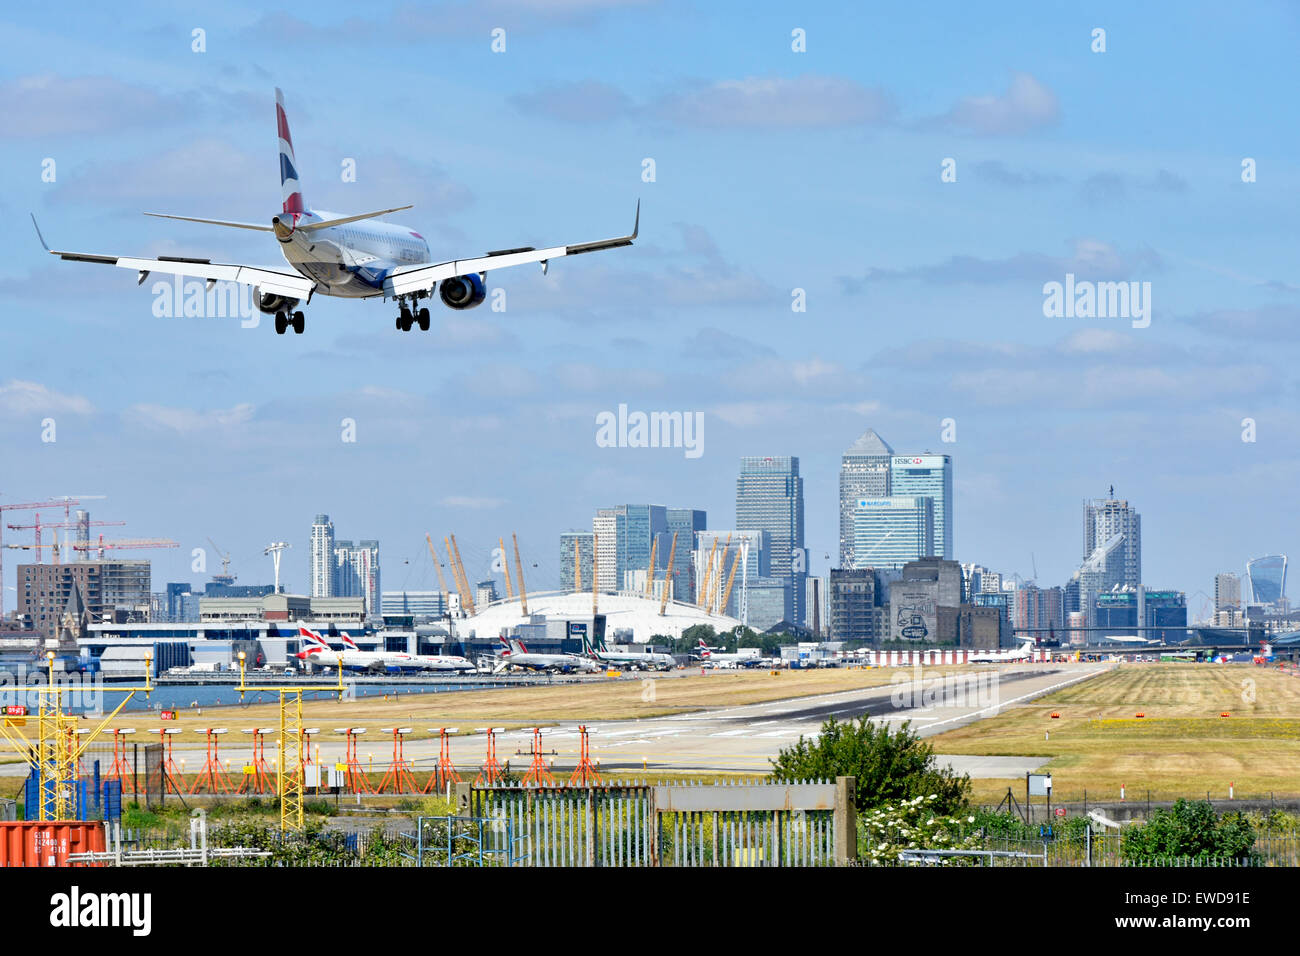 British Airways airplane landing London City Airport Newham with O2 arena & Canary Wharf in London Docklands - Stock Image